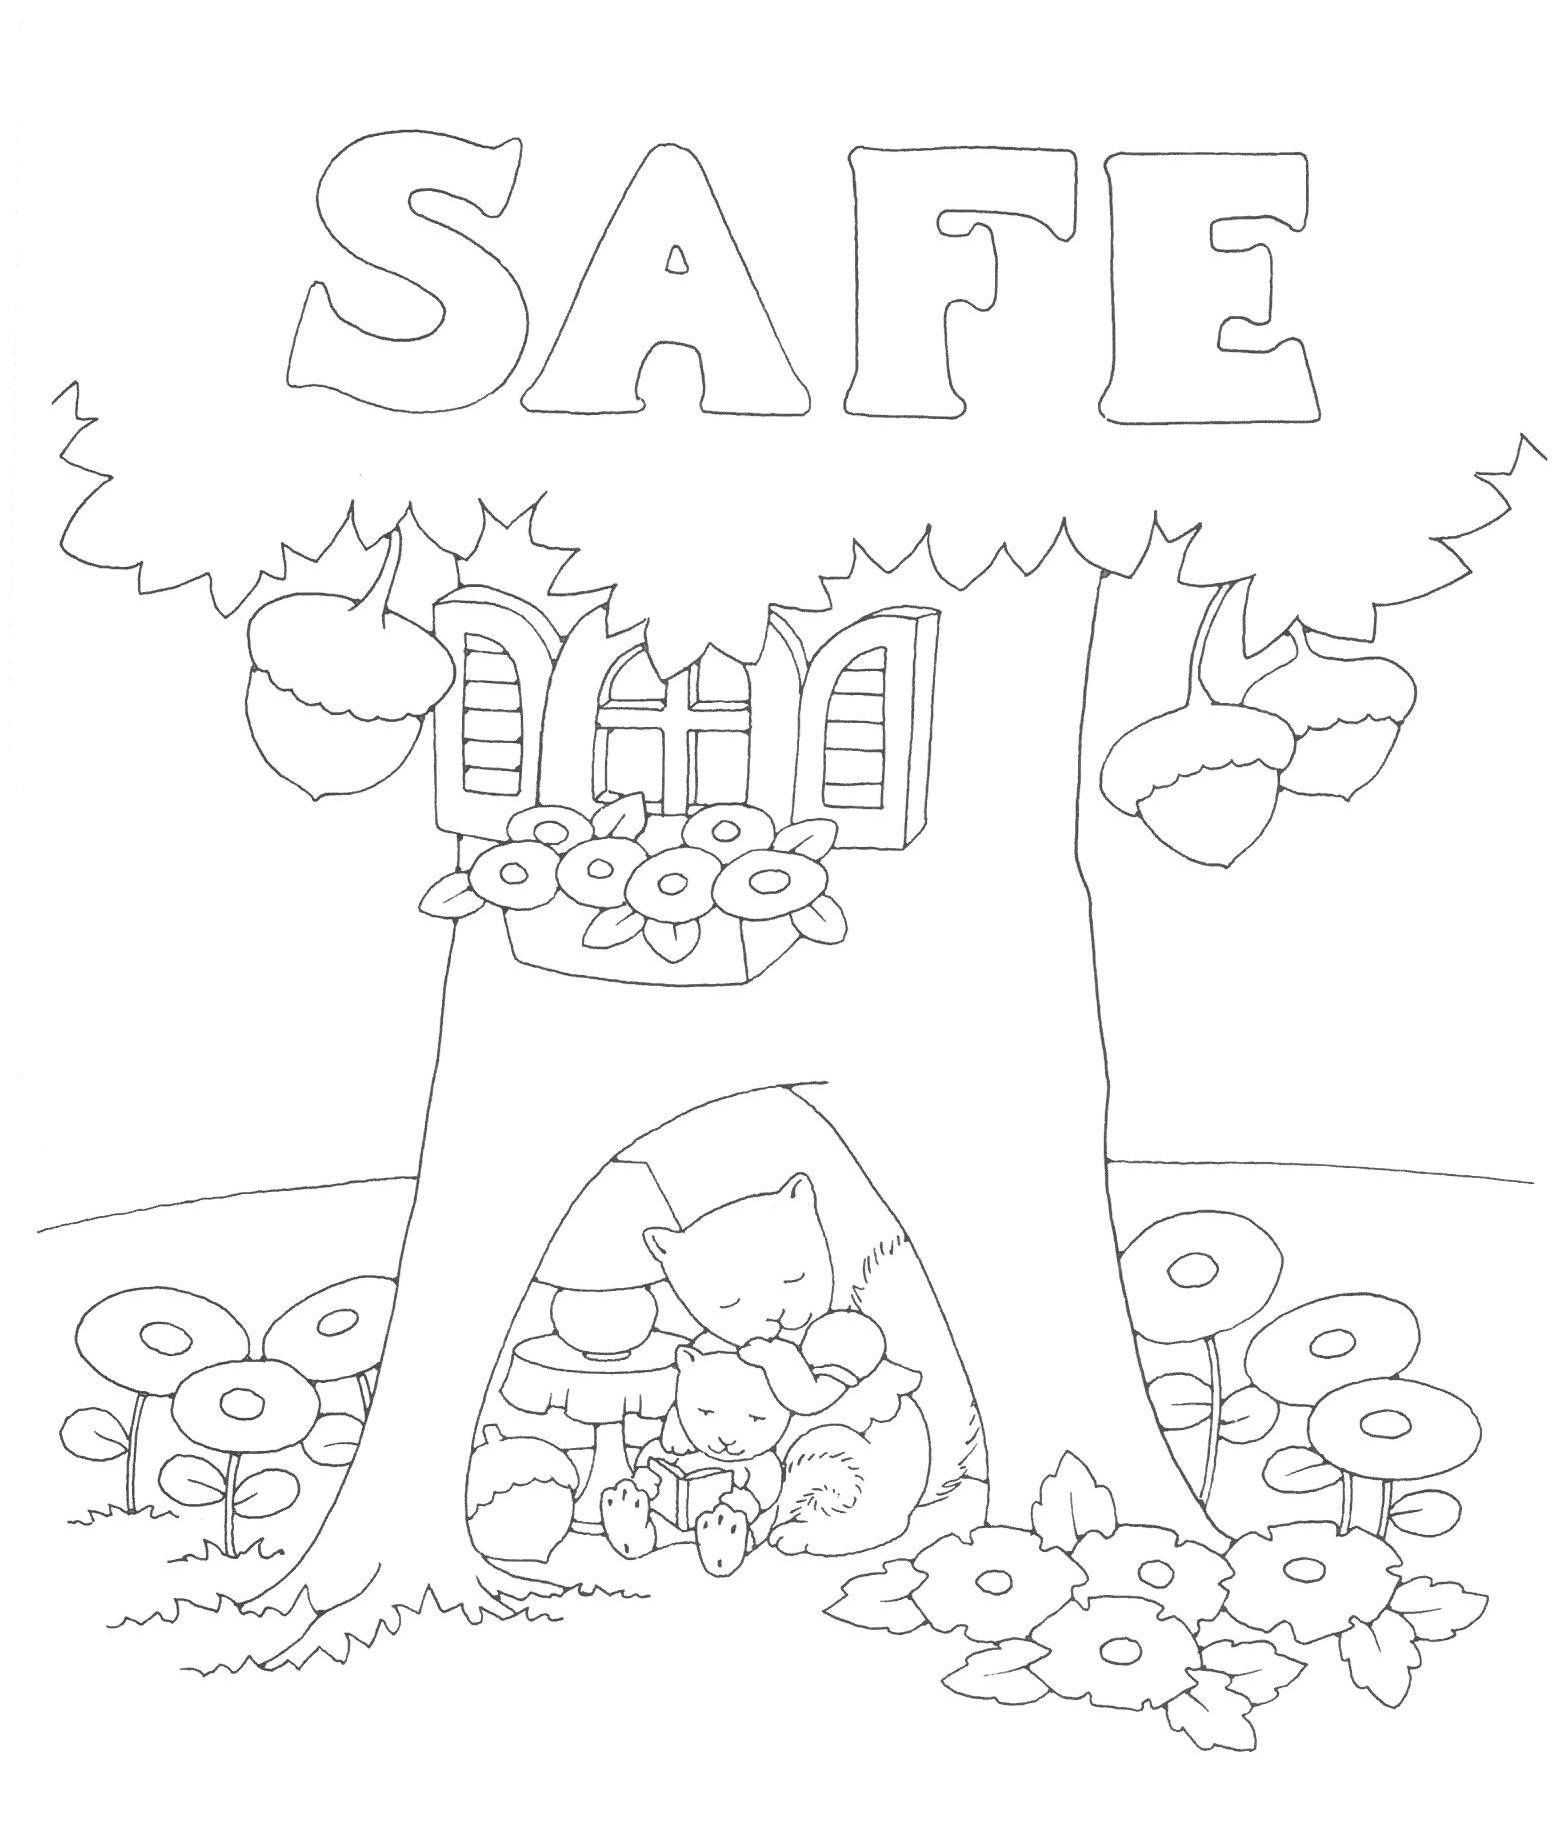 mary engelbreit coloring pages mary engelbreit coloring pages printable free coloring pages mary engelbreit coloring